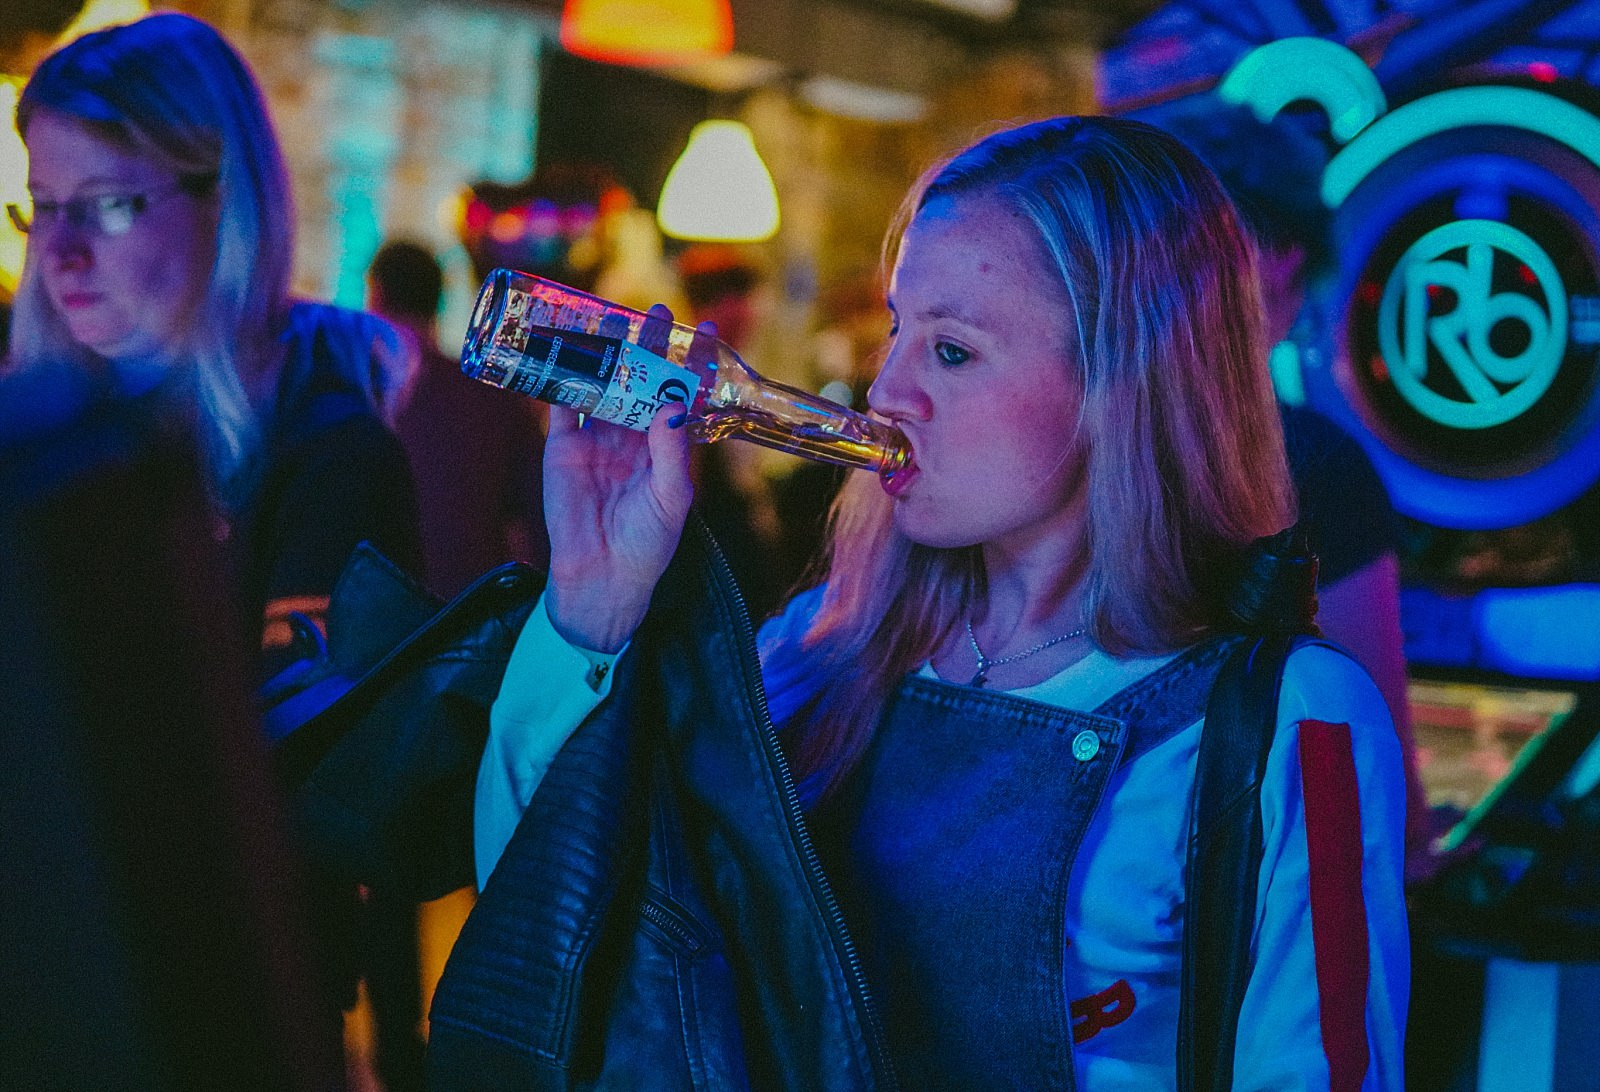 girl drinking corona in an arcade with games